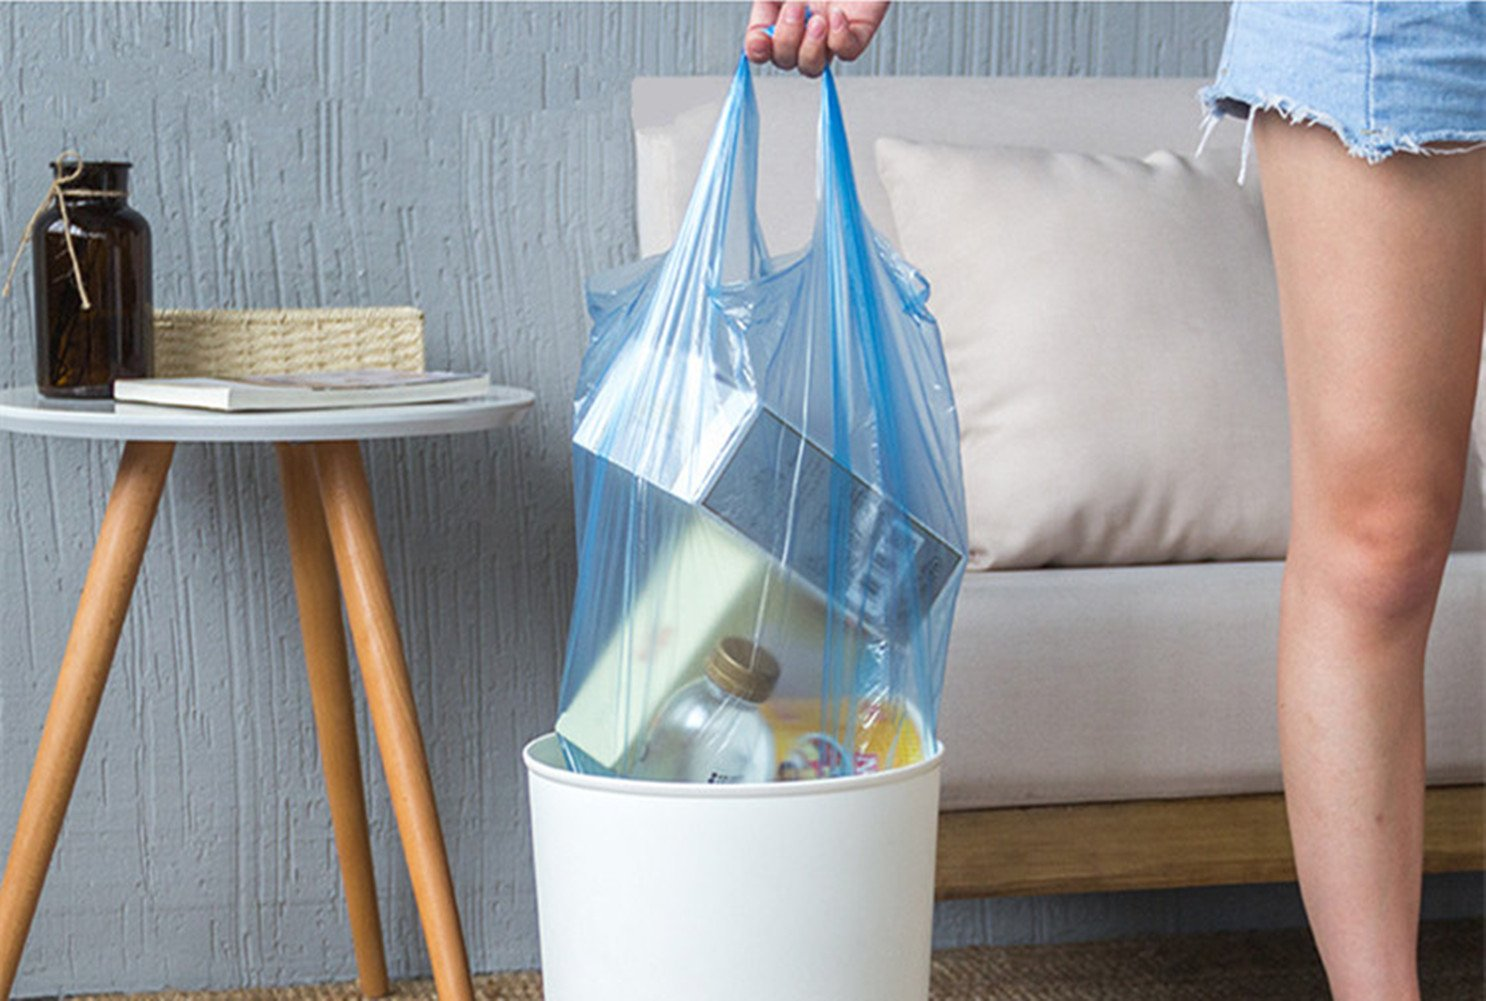 Trash Bags,4 Gallon Handle Tie Small Garbage Bags for Office Kitchen,Bedroom Waste Bin,Colorful Portable Strong Rubbish Bags,Wastebasket Bags,5 Rolls//100 Counts